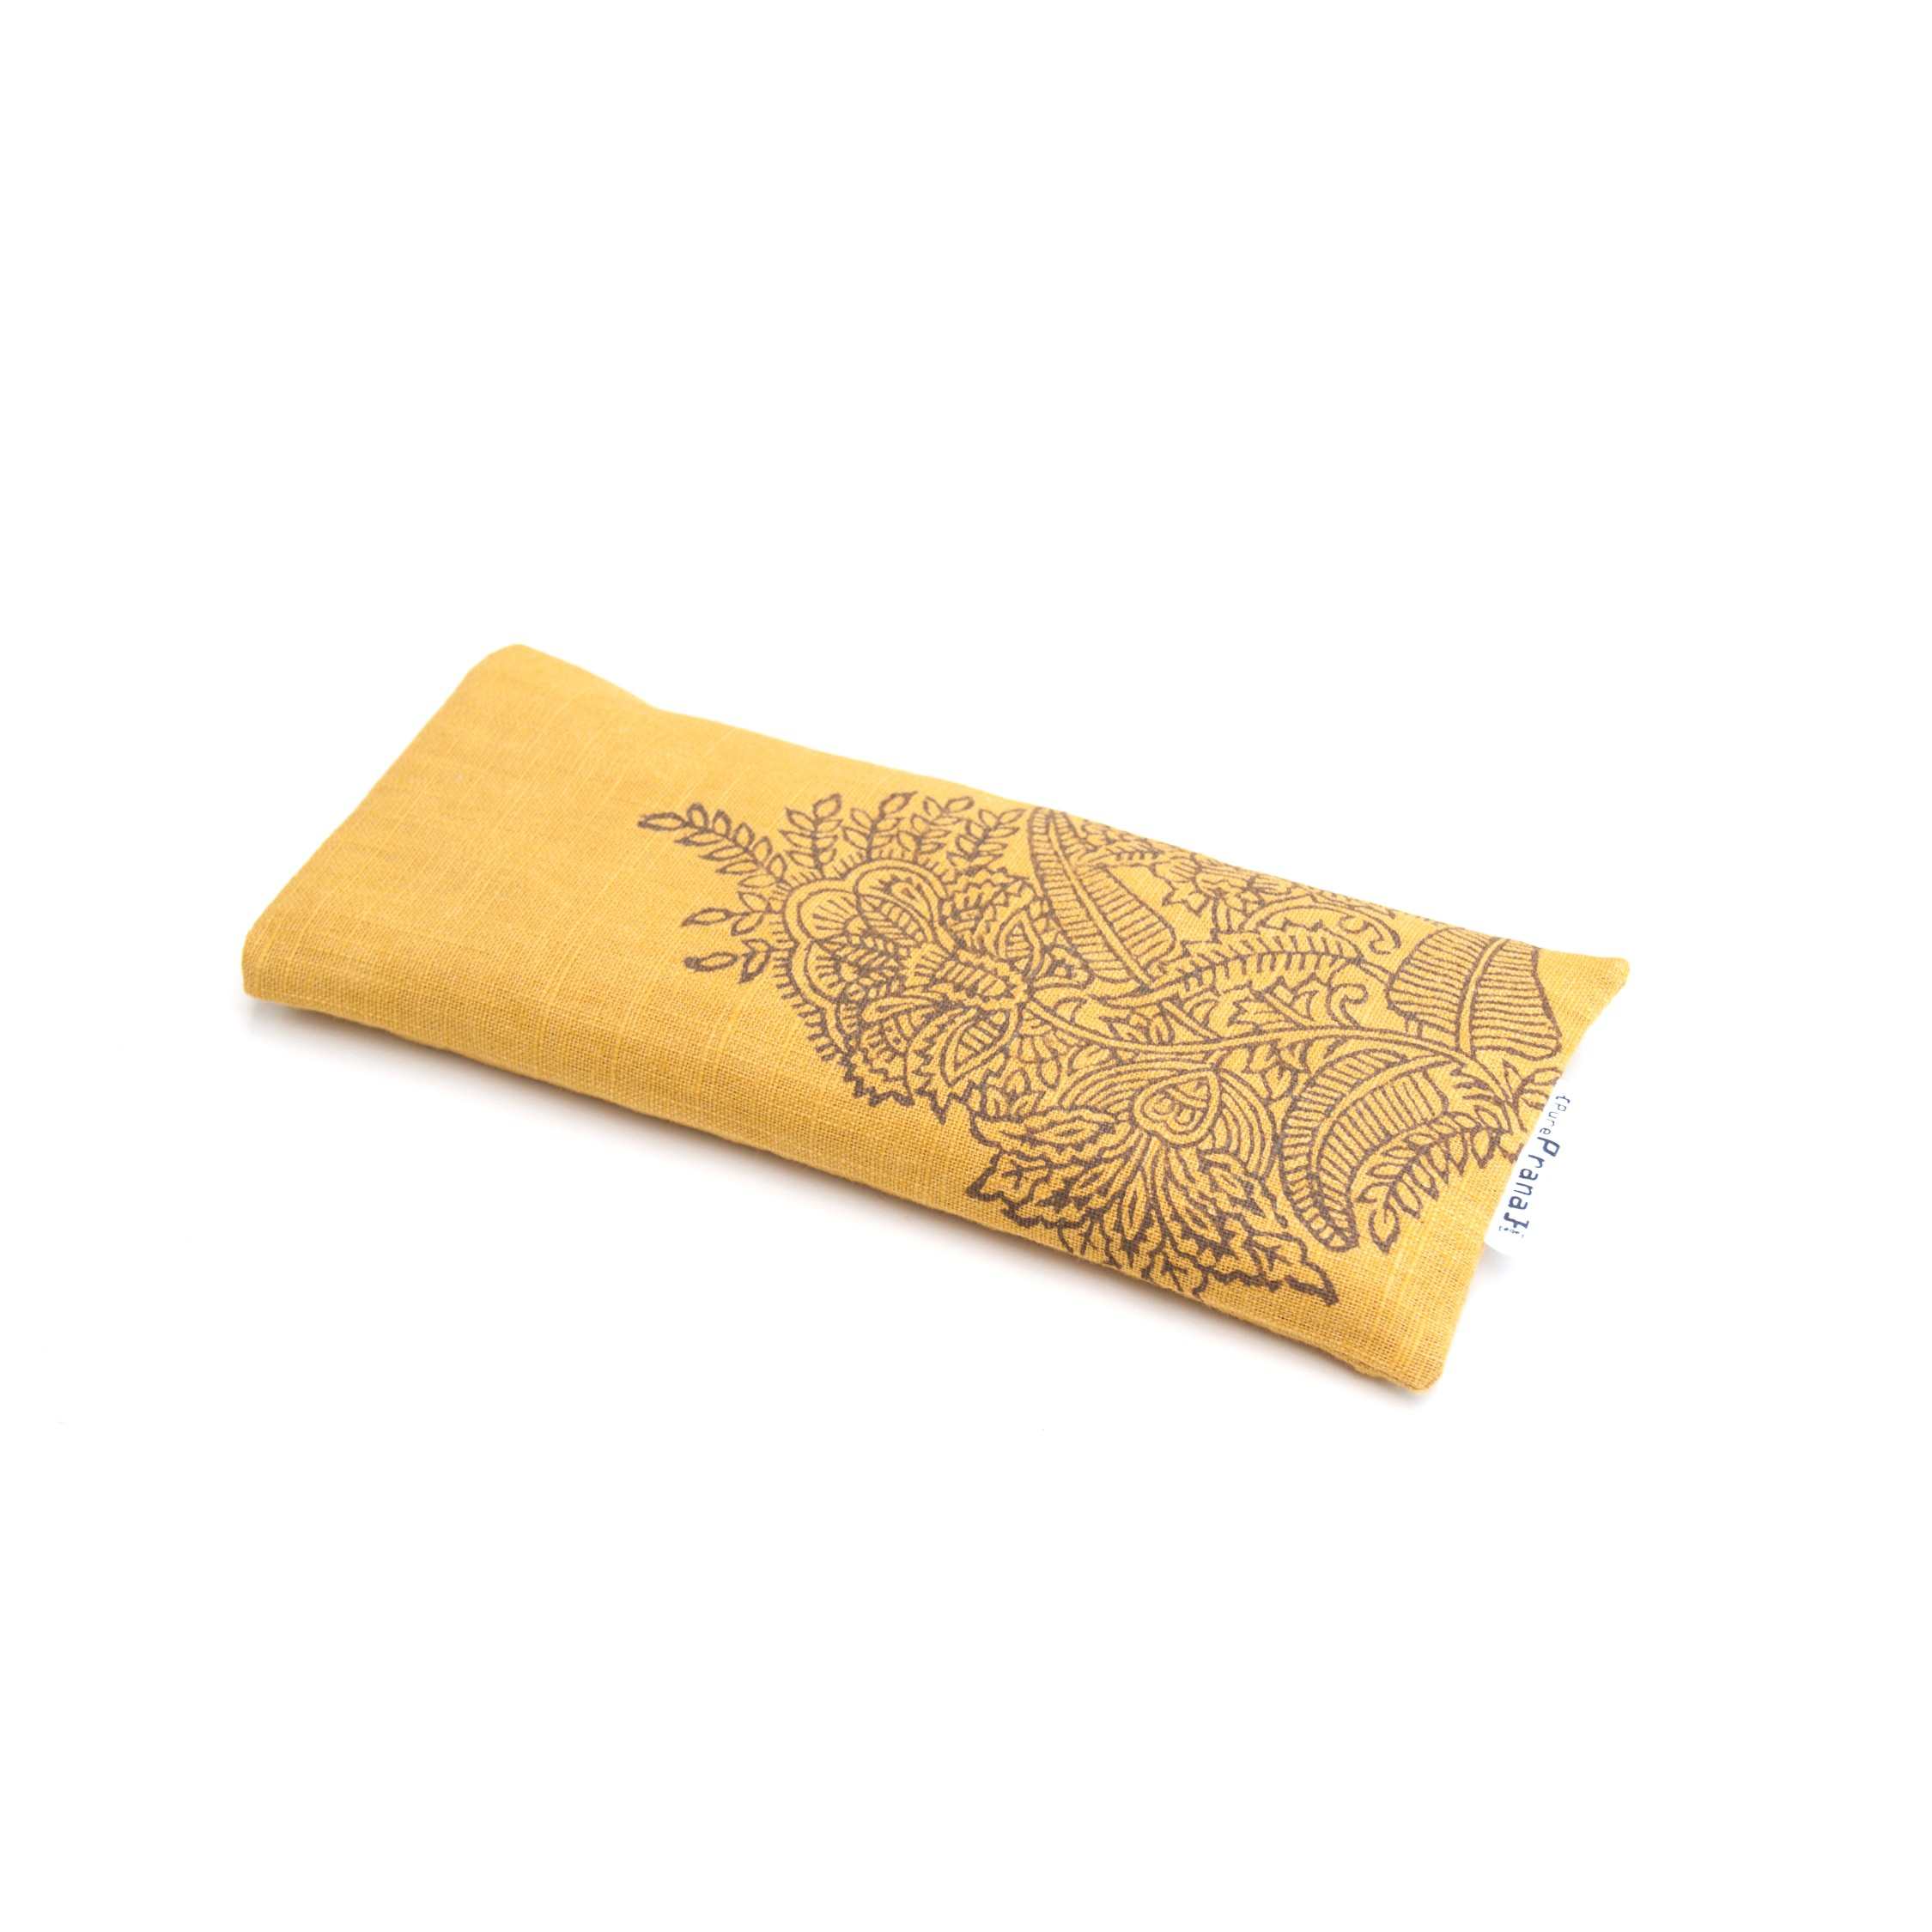 Crystal filled eye pillow by Pure Prana Label